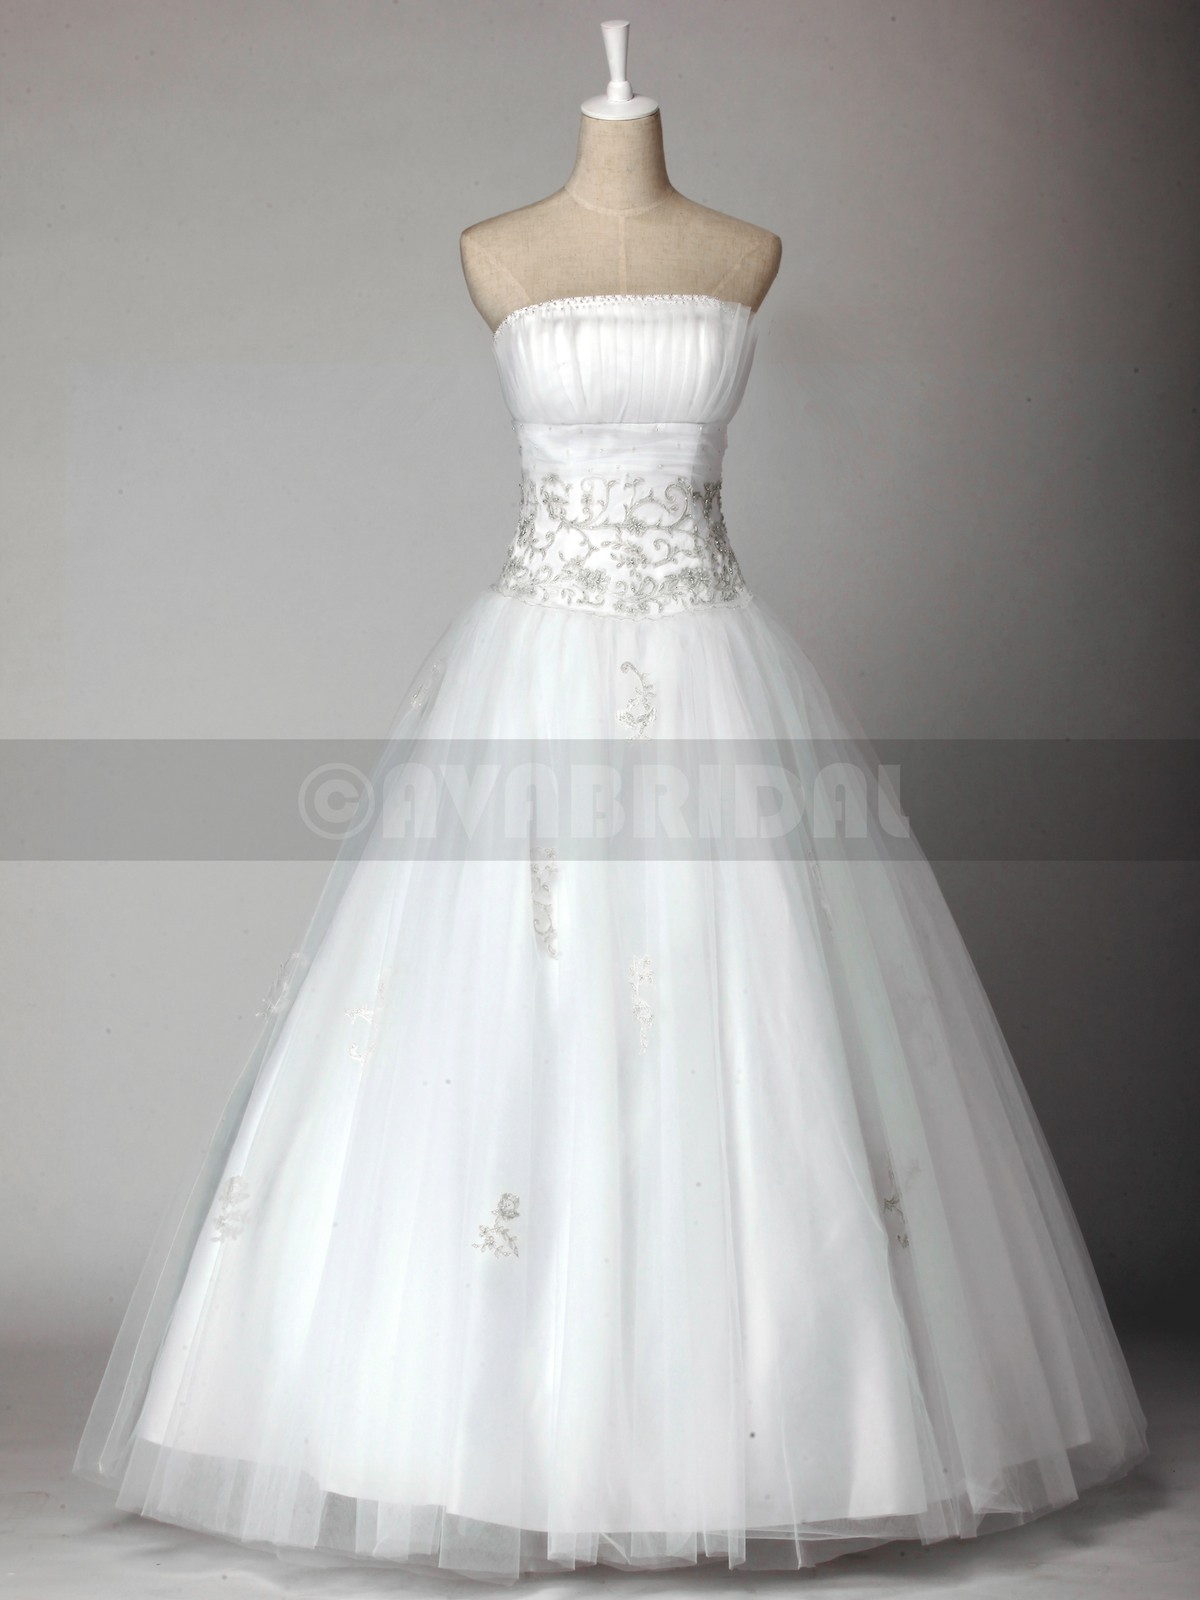 Princess Lace Embroidery Tulle Wedding Gown W810-ront